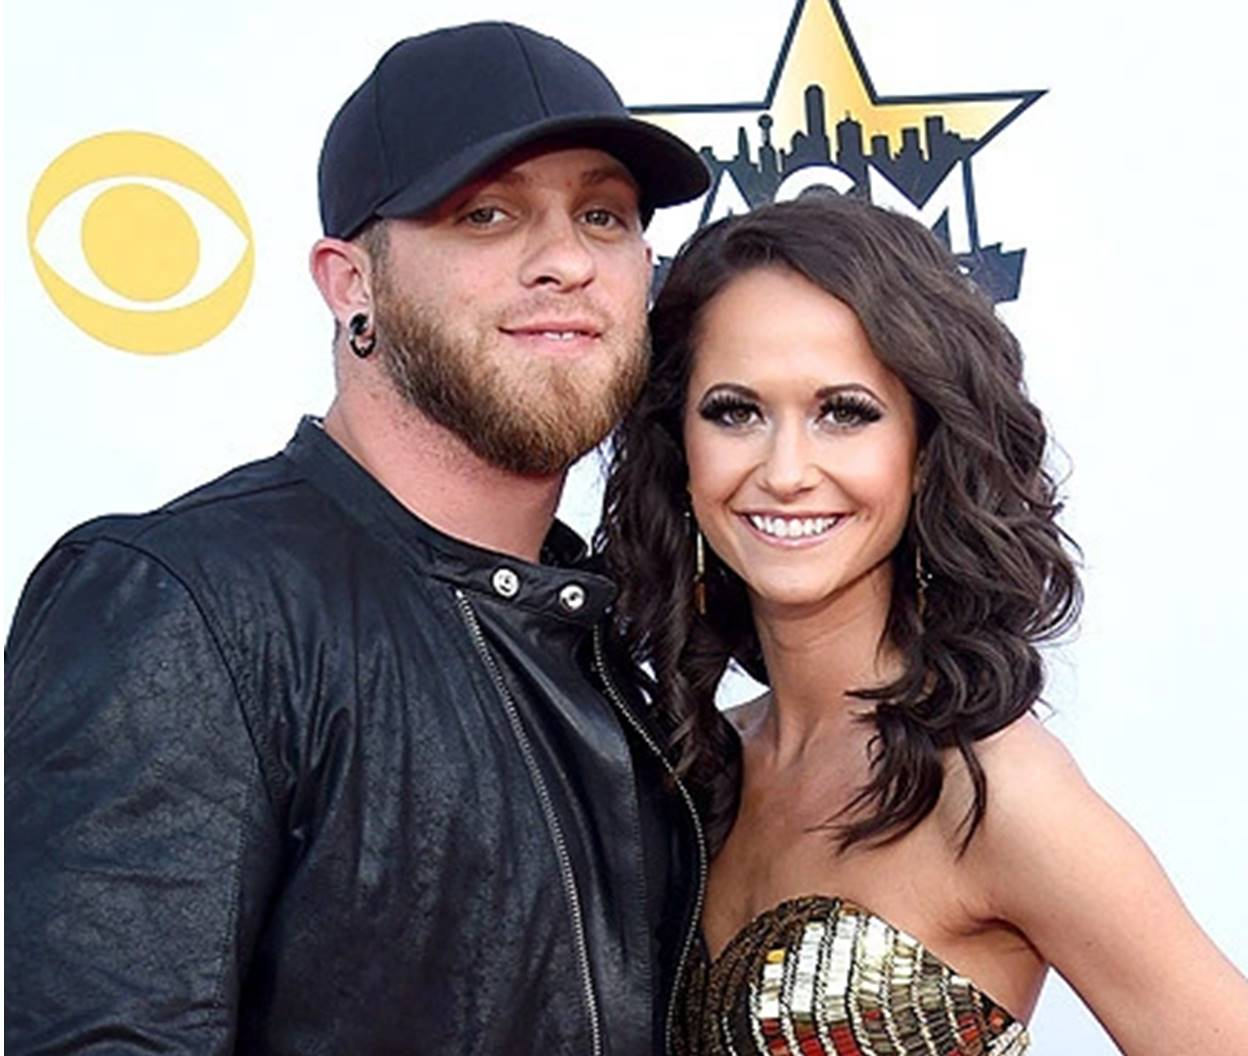 Brantley Gilbert's Wife Has Strong Opinions About His Music